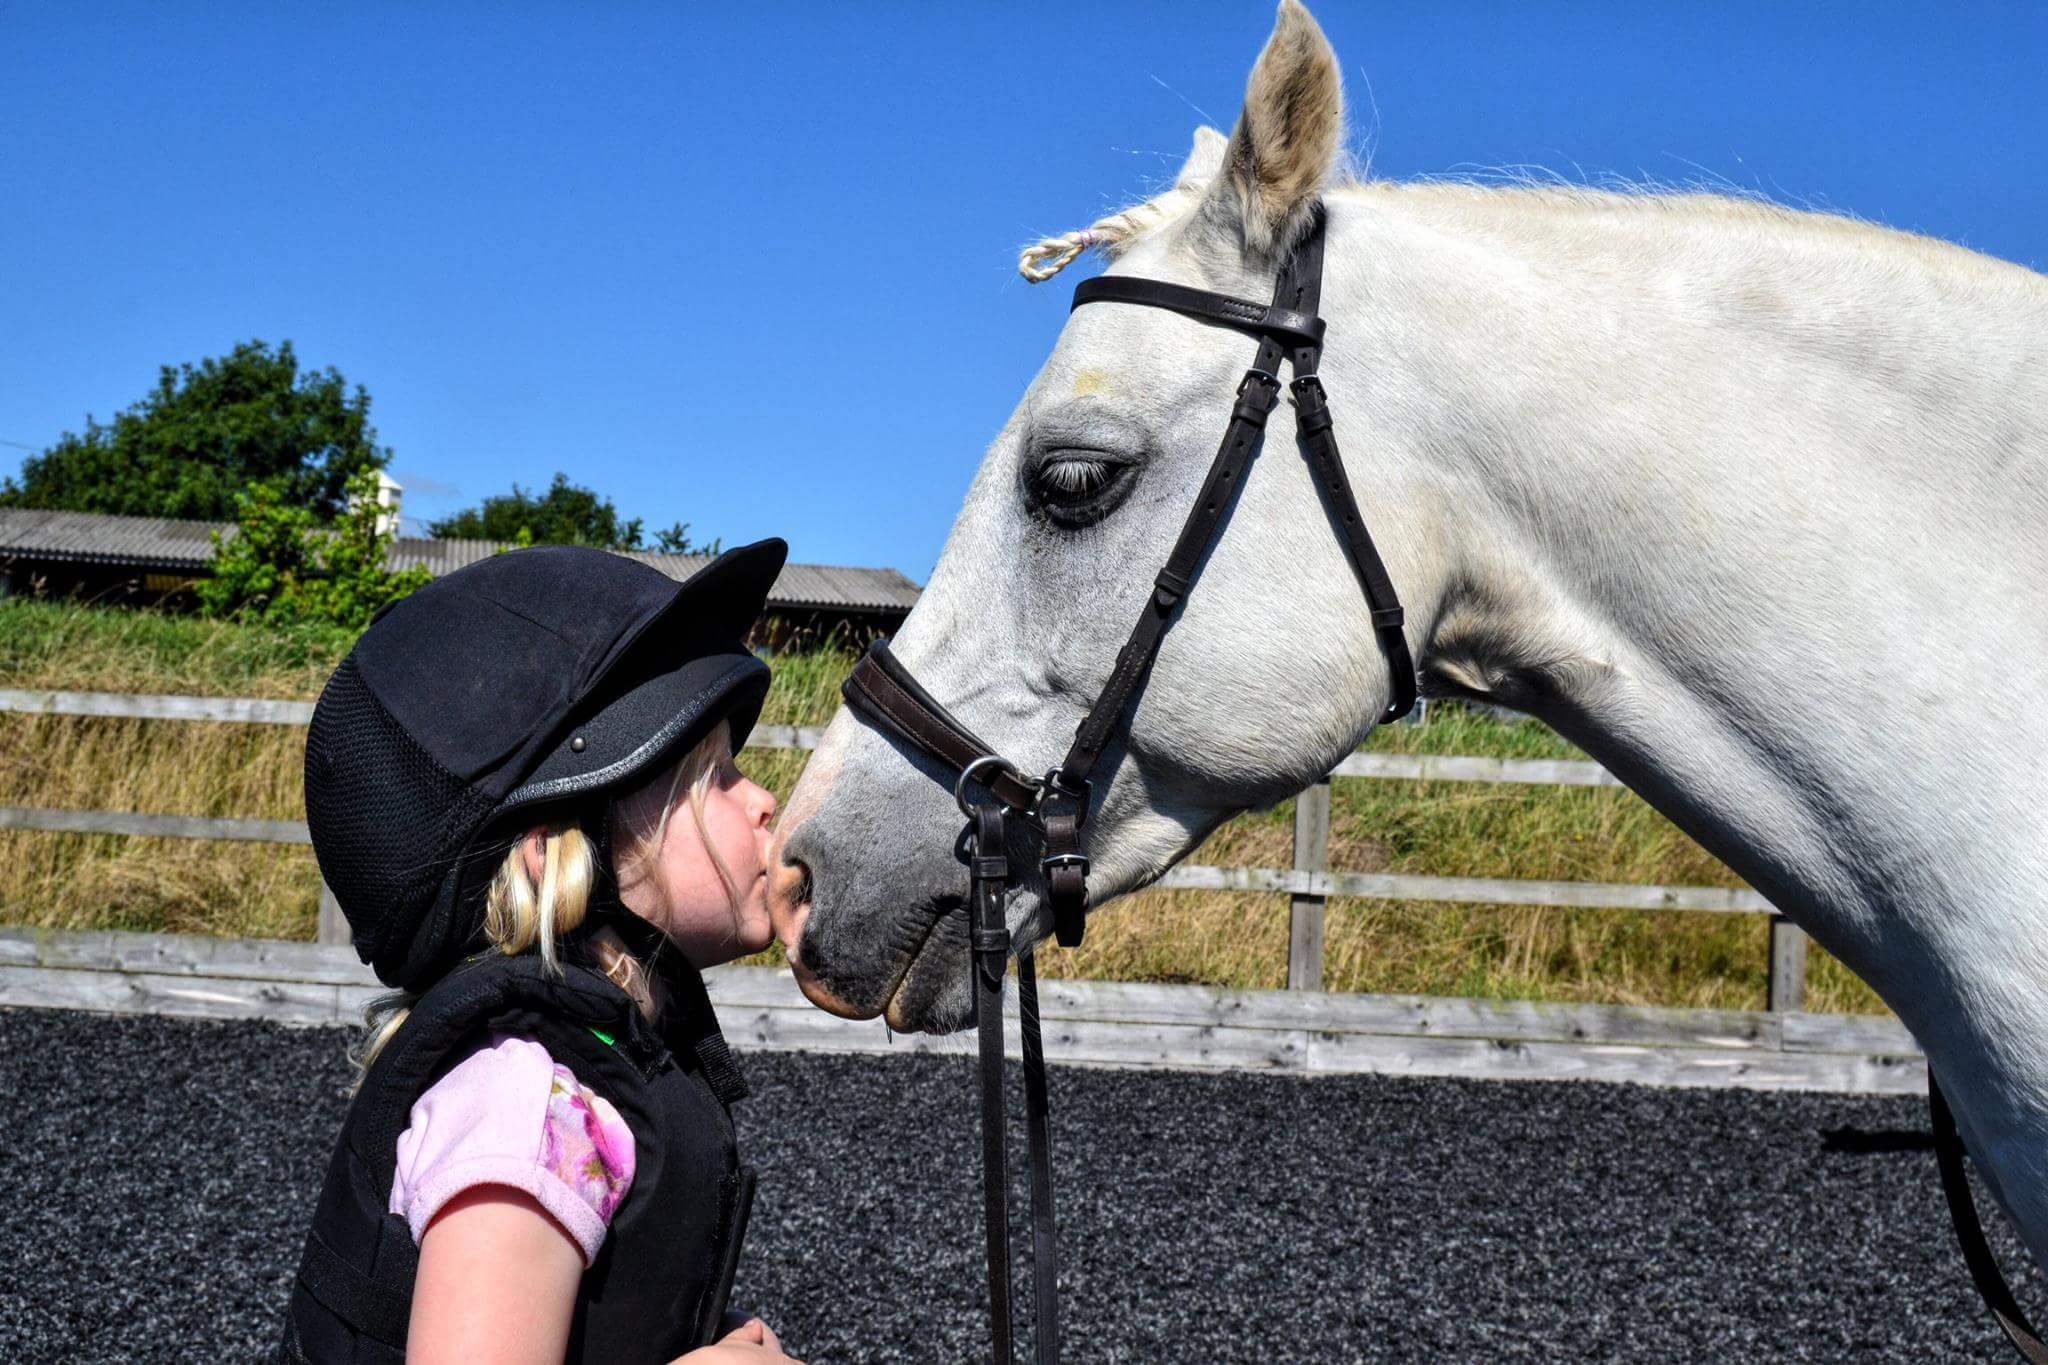 Children love ponies. Mutual happiness.